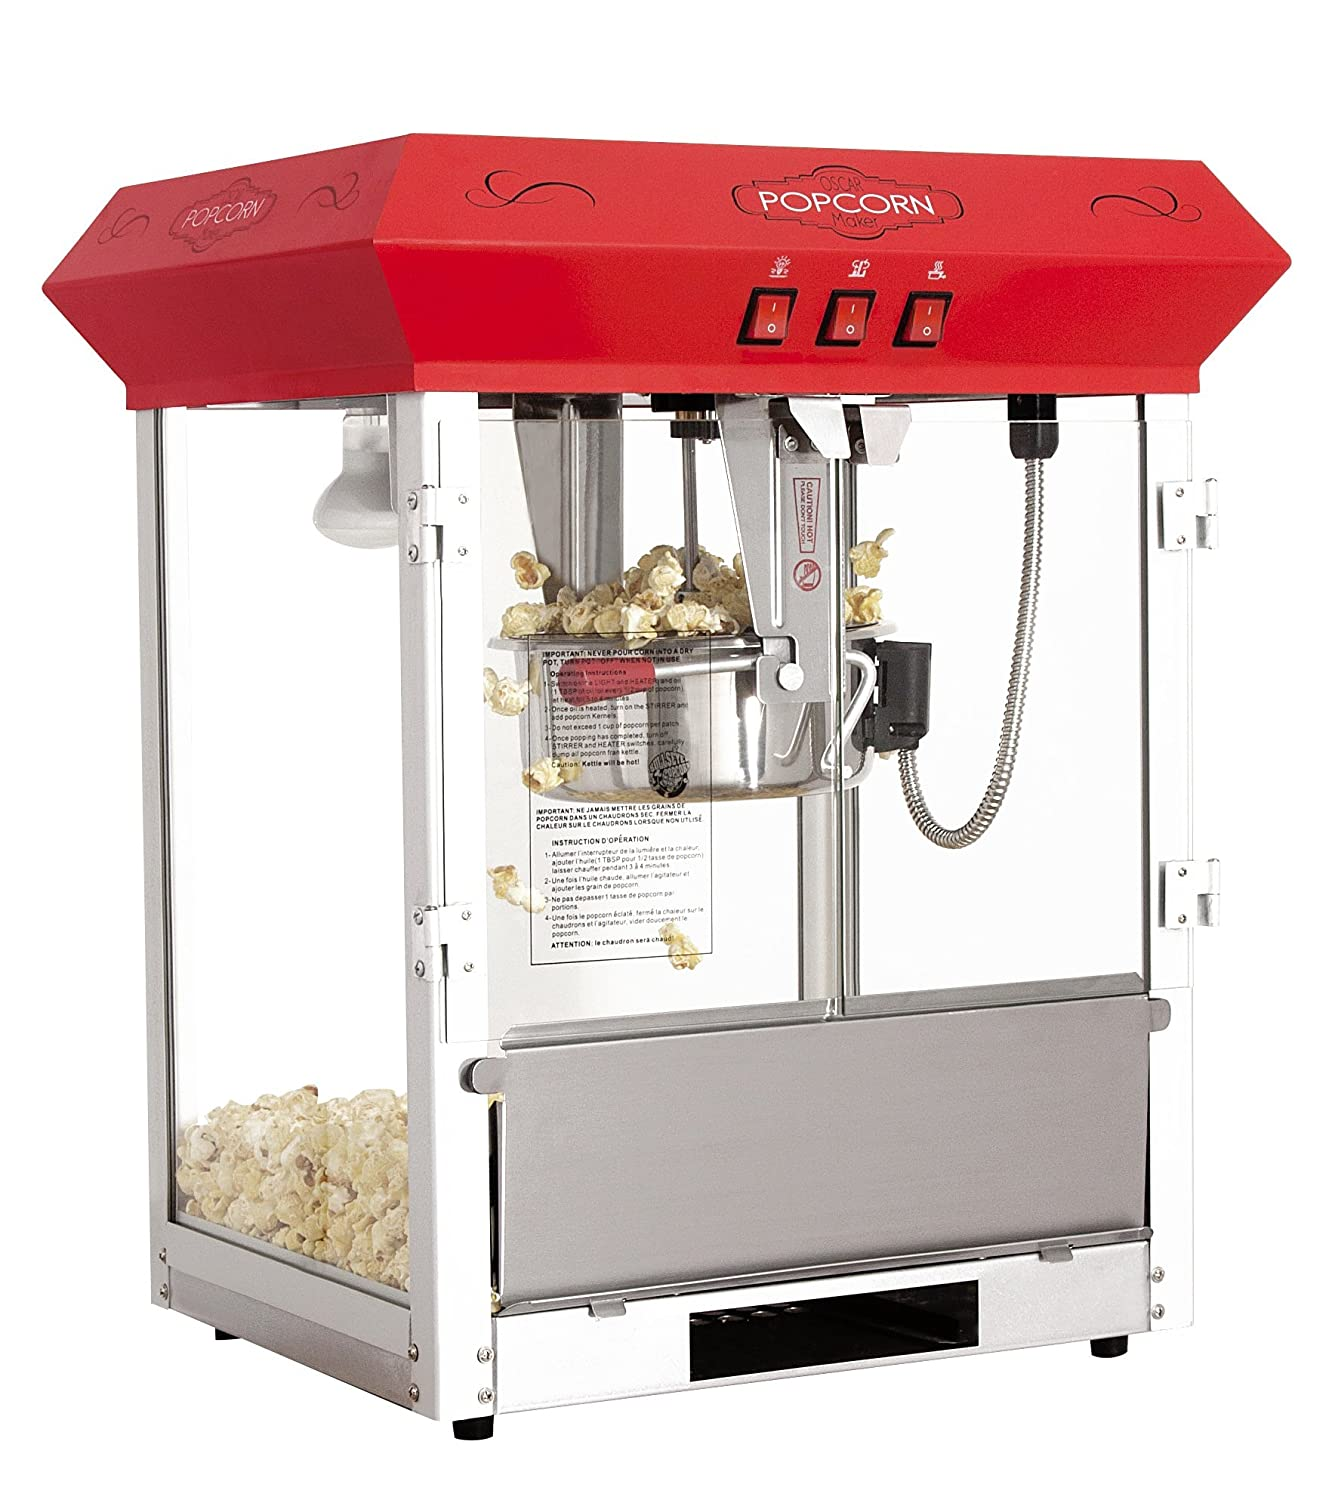 Bullseye Popcorn Machine 8 oz. tabletop